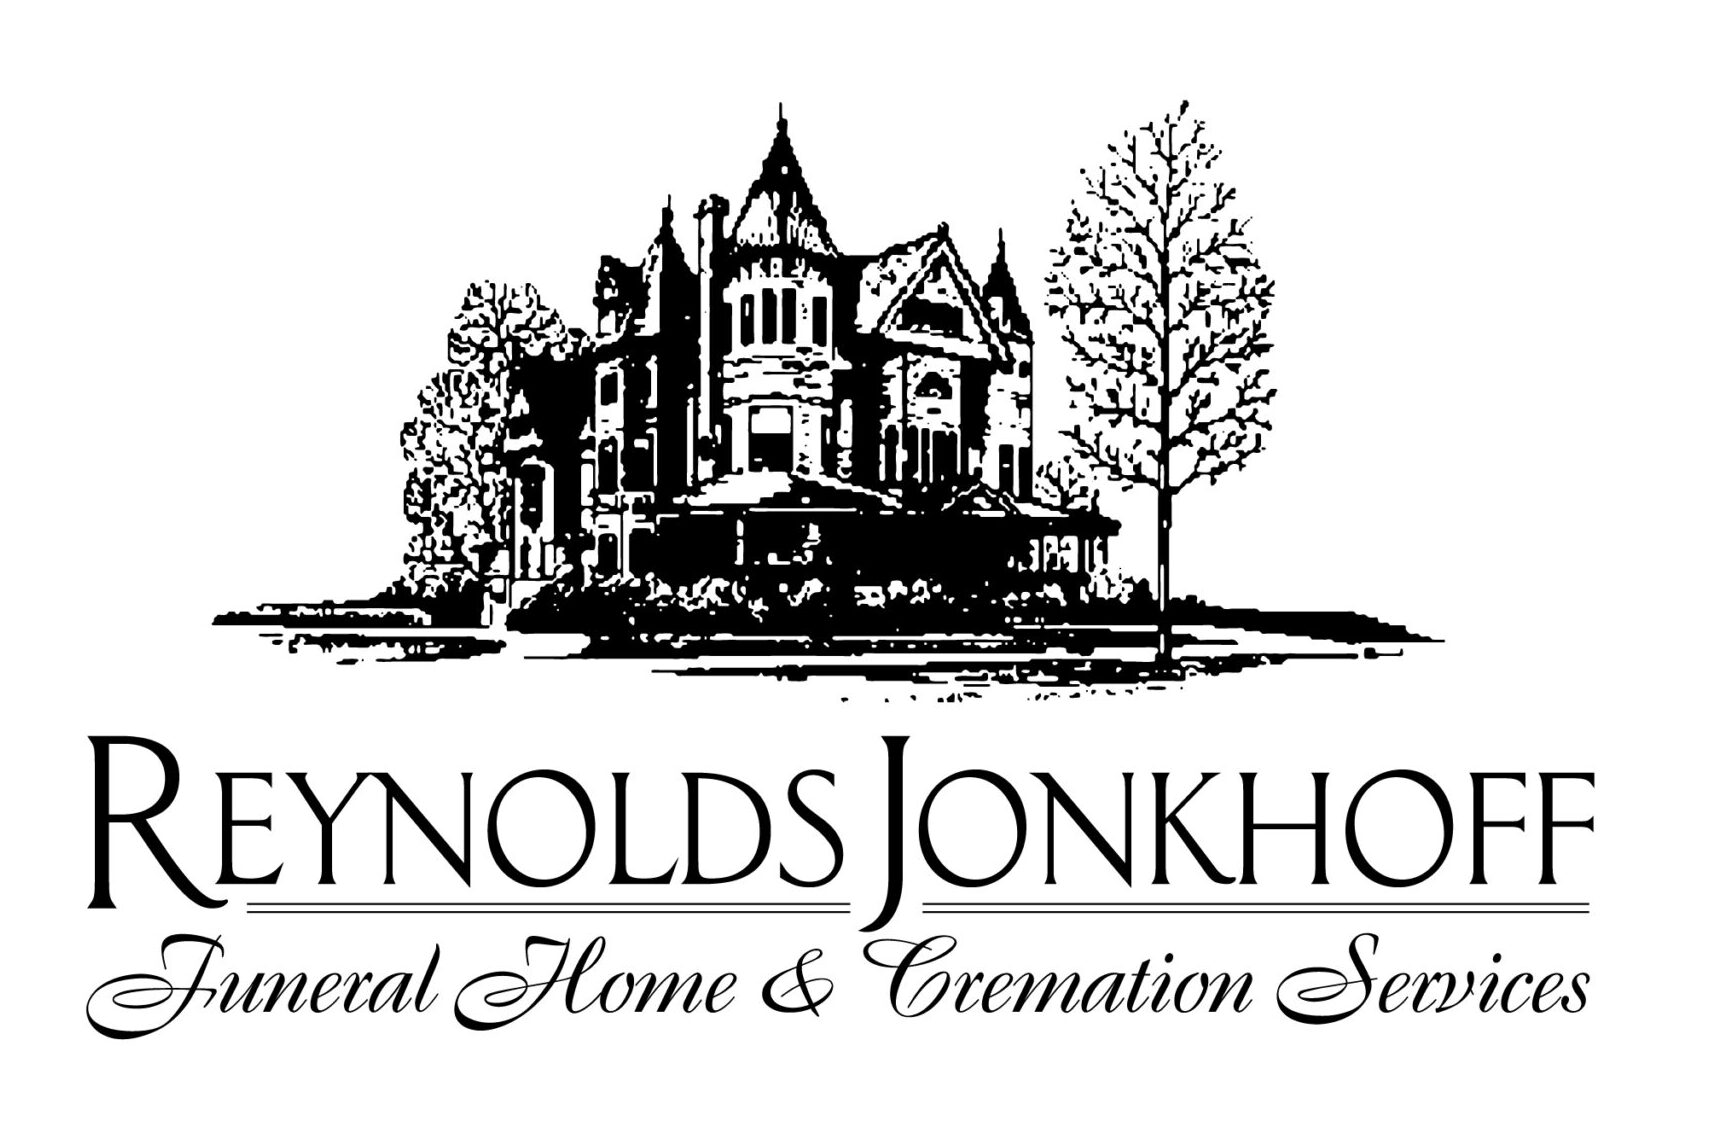 Reynolds Jonkhoff Funeral Home and Cremation Services